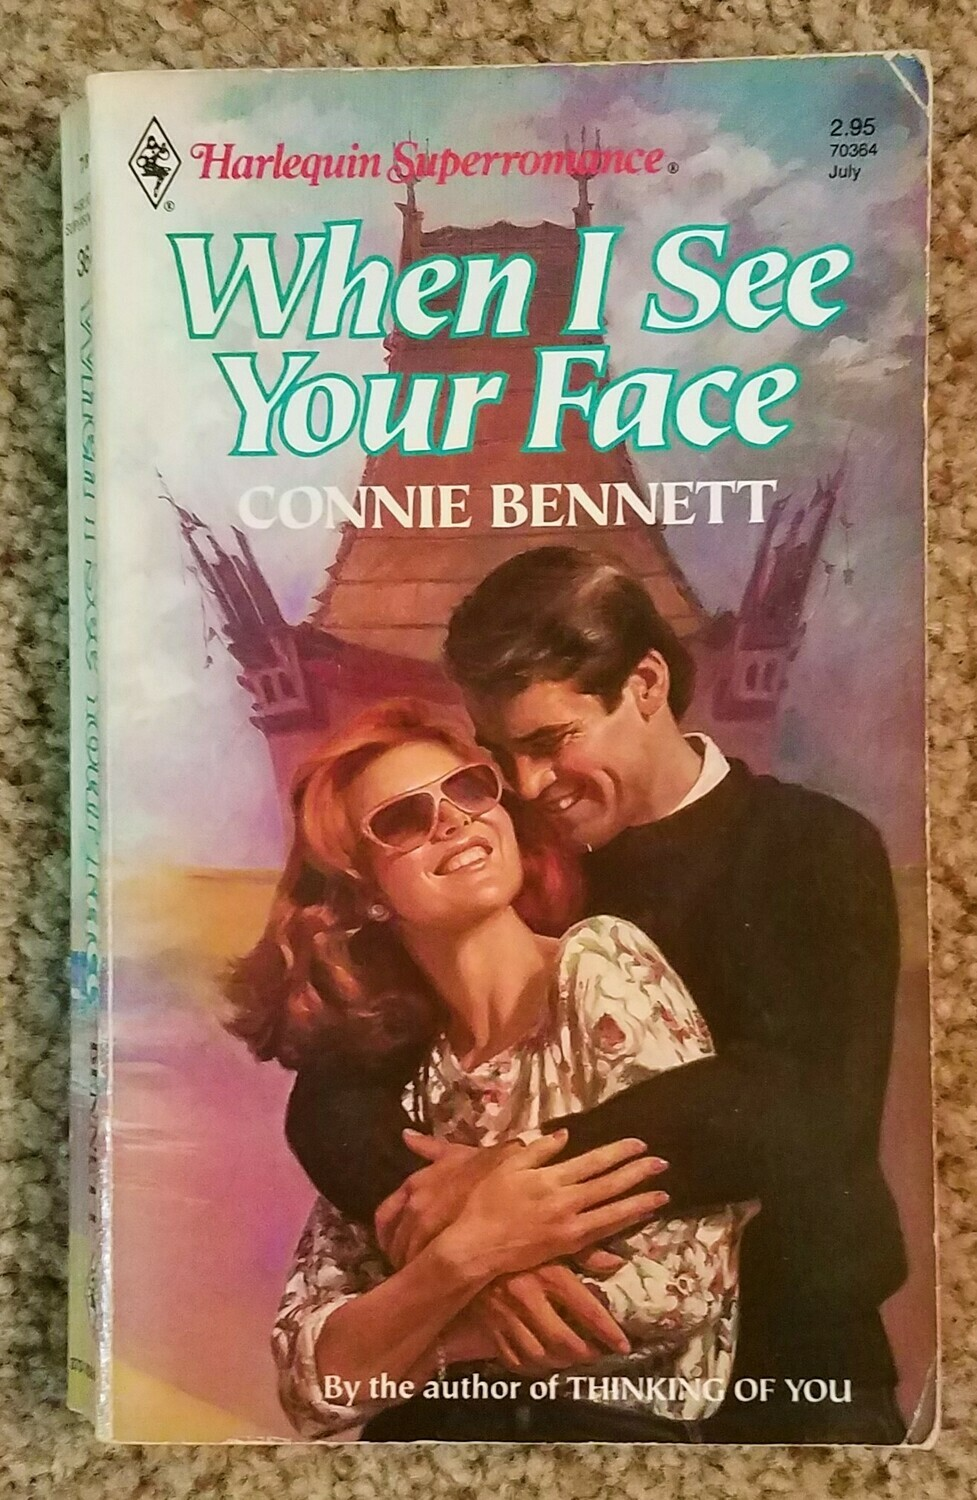 When I See Your Face by Connie Bennett